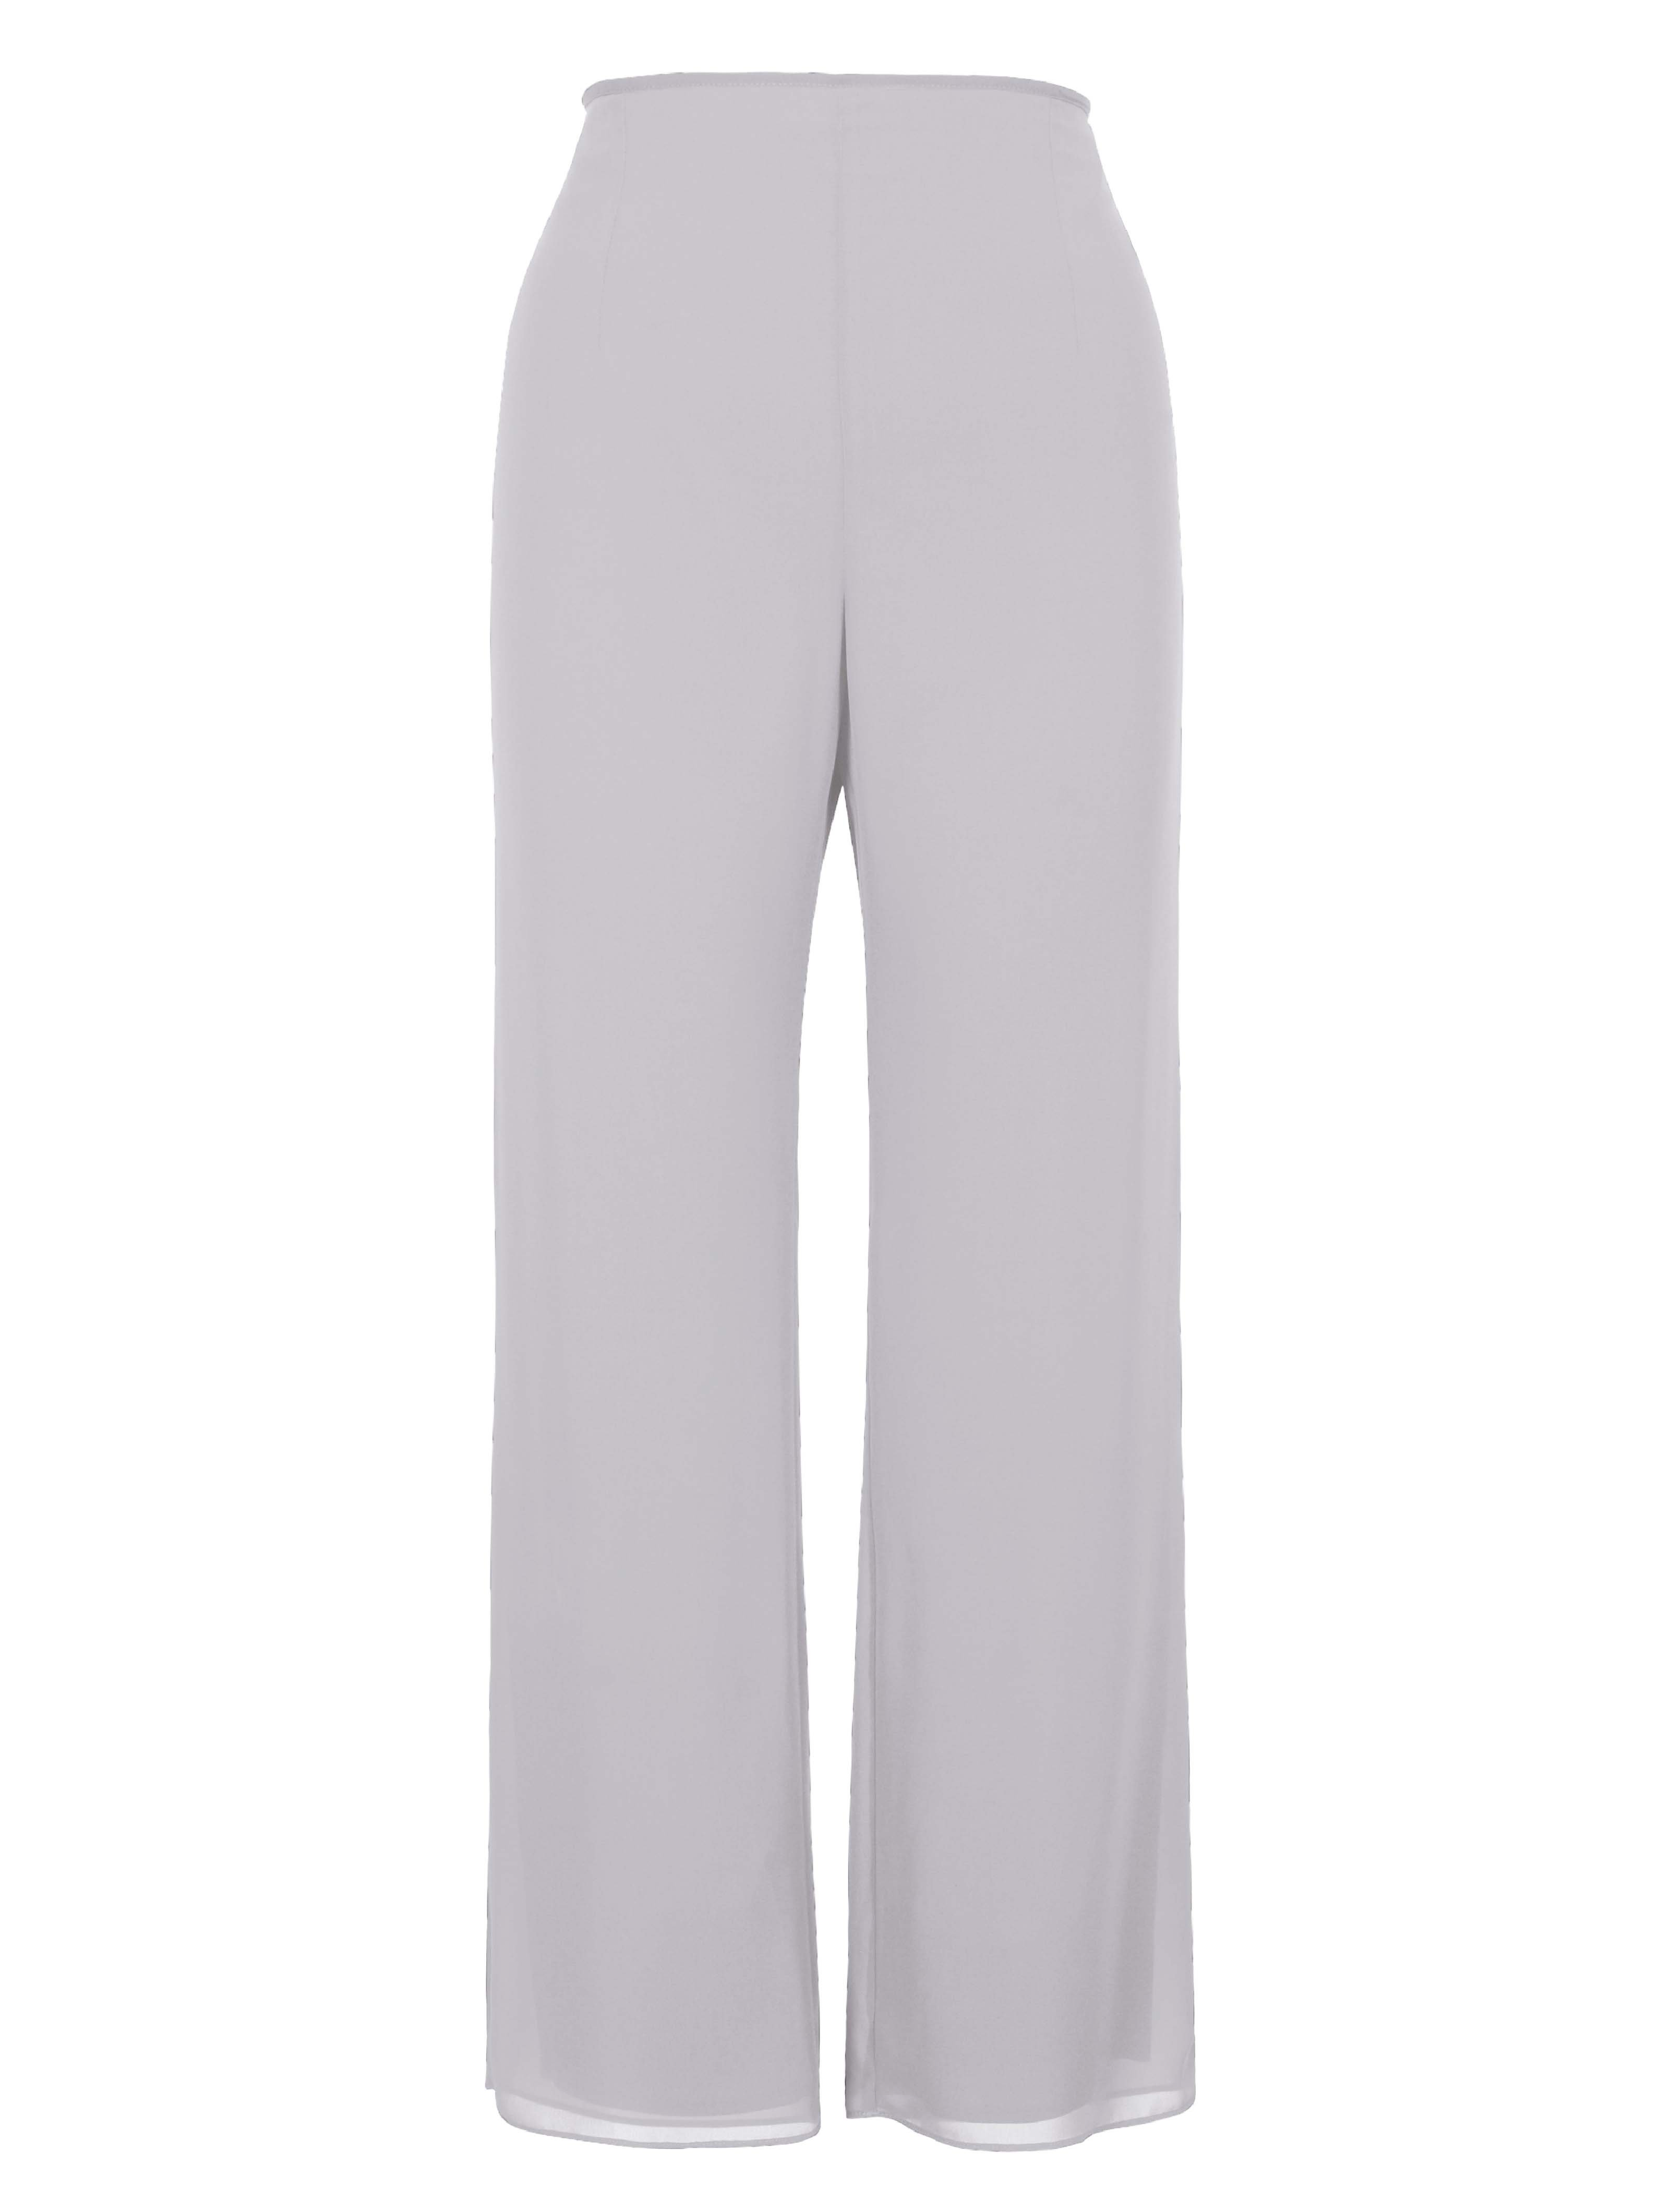 Dove Satin Trim Chiffon Trouser